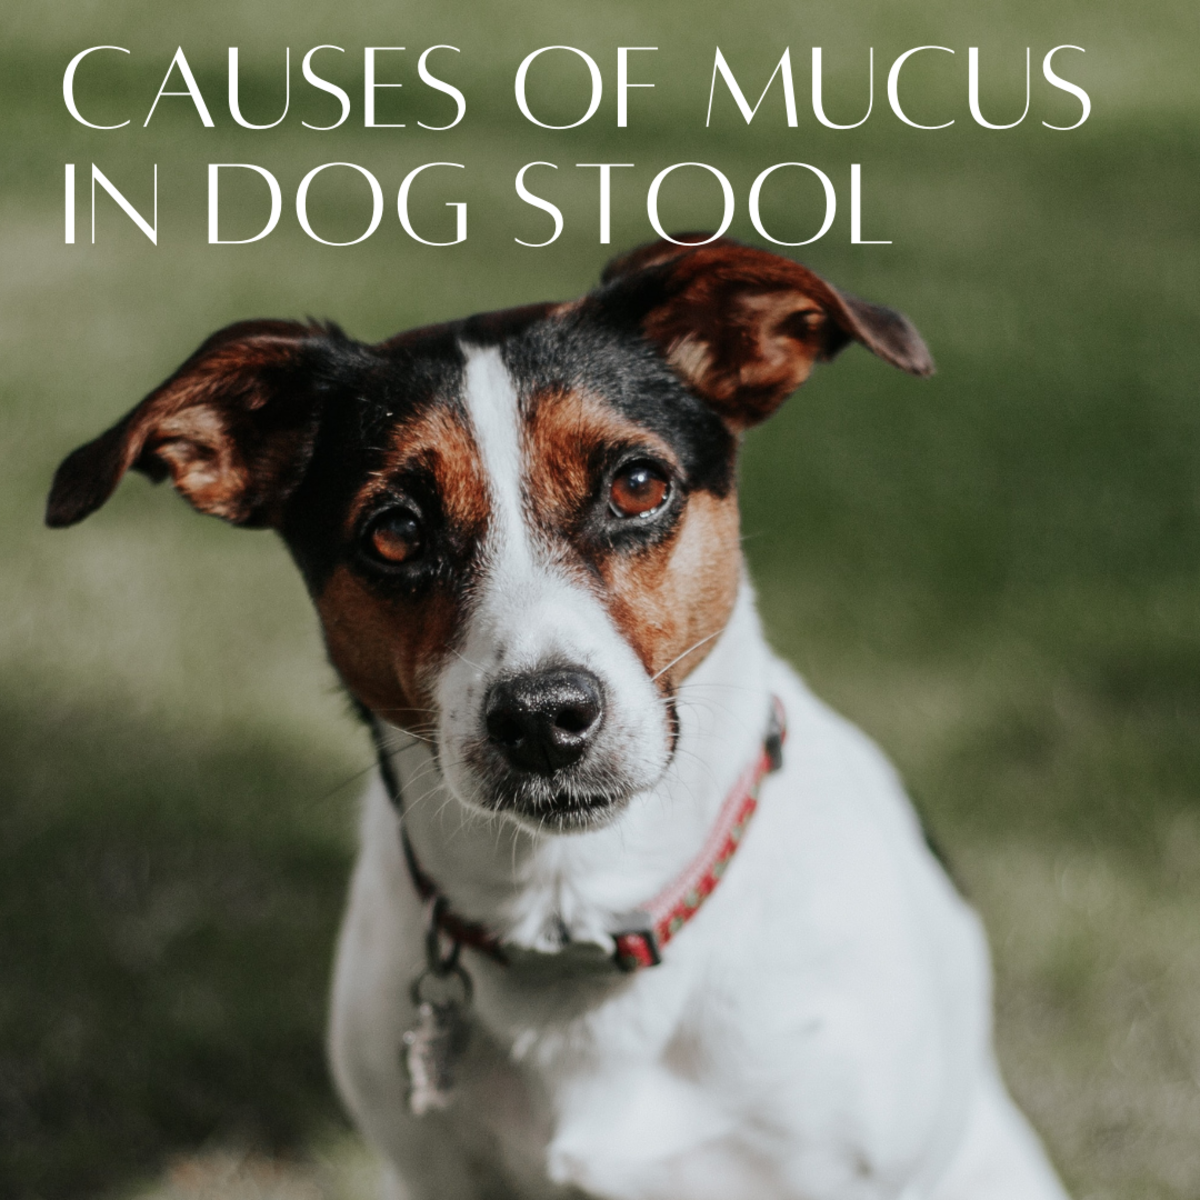 Causes of Mucus in Dog Stool